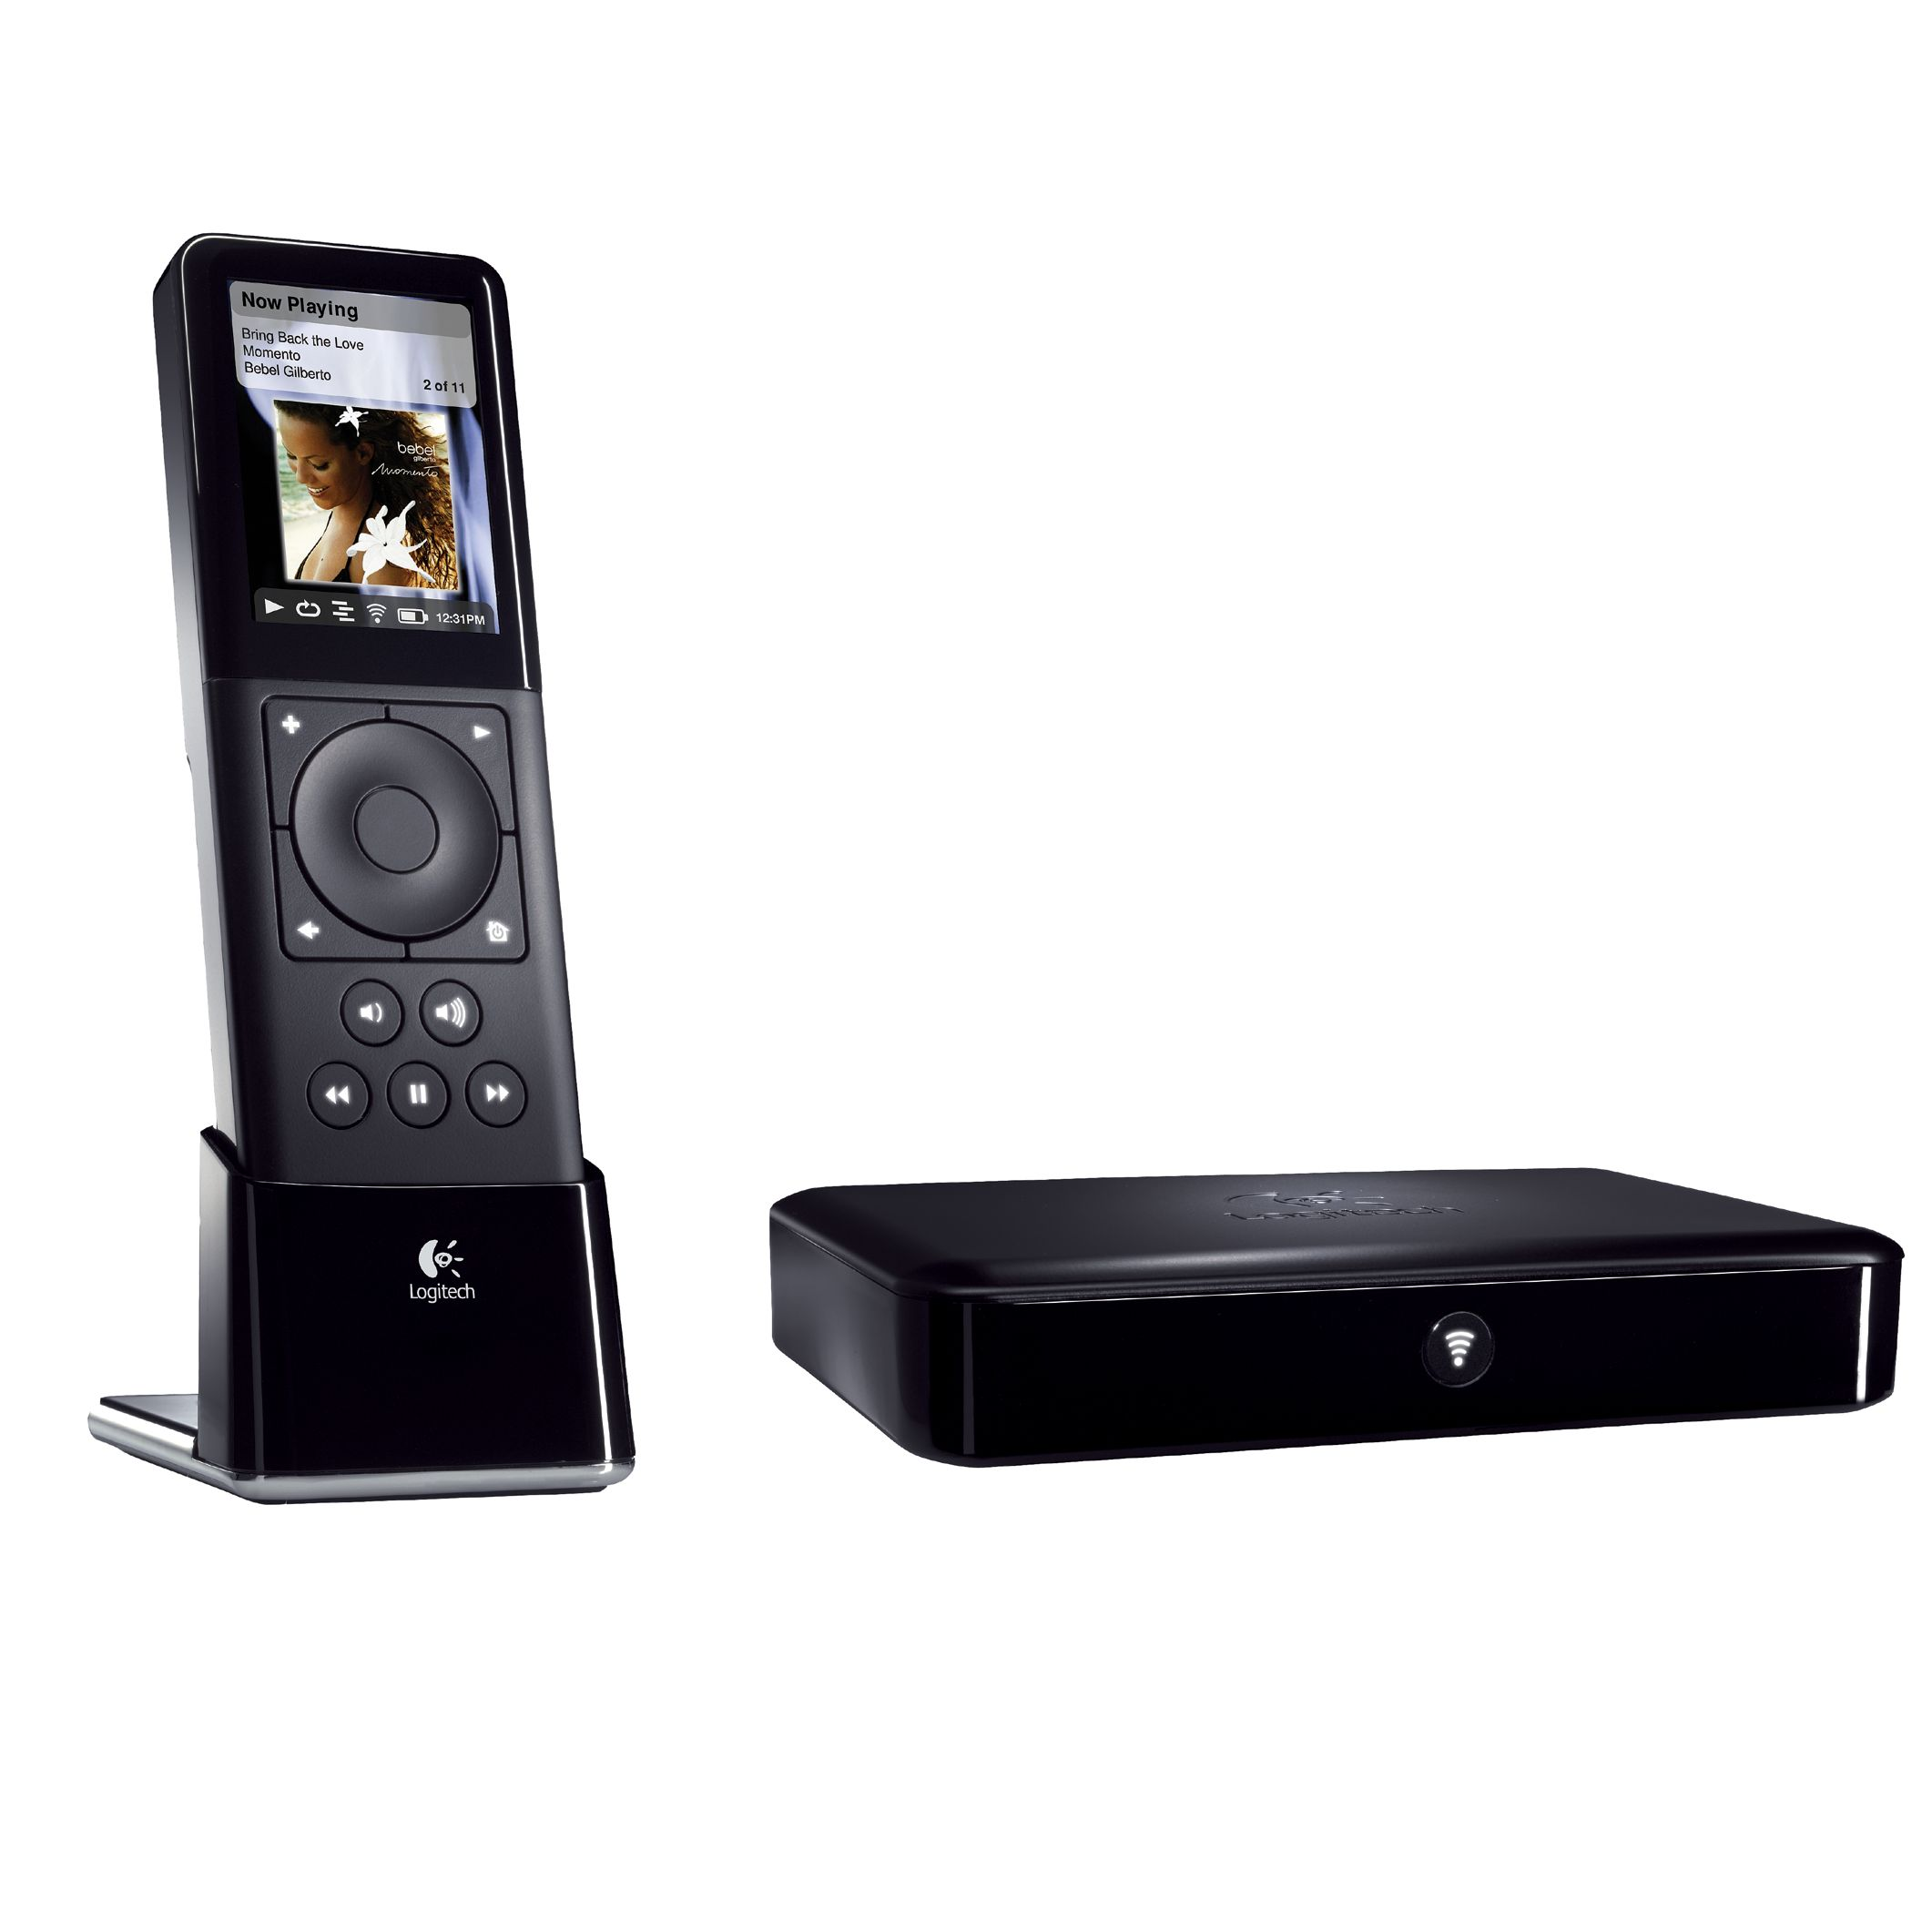 Logitech Squeezebox Duet Wireless Remote and Receiver at JohnLewis